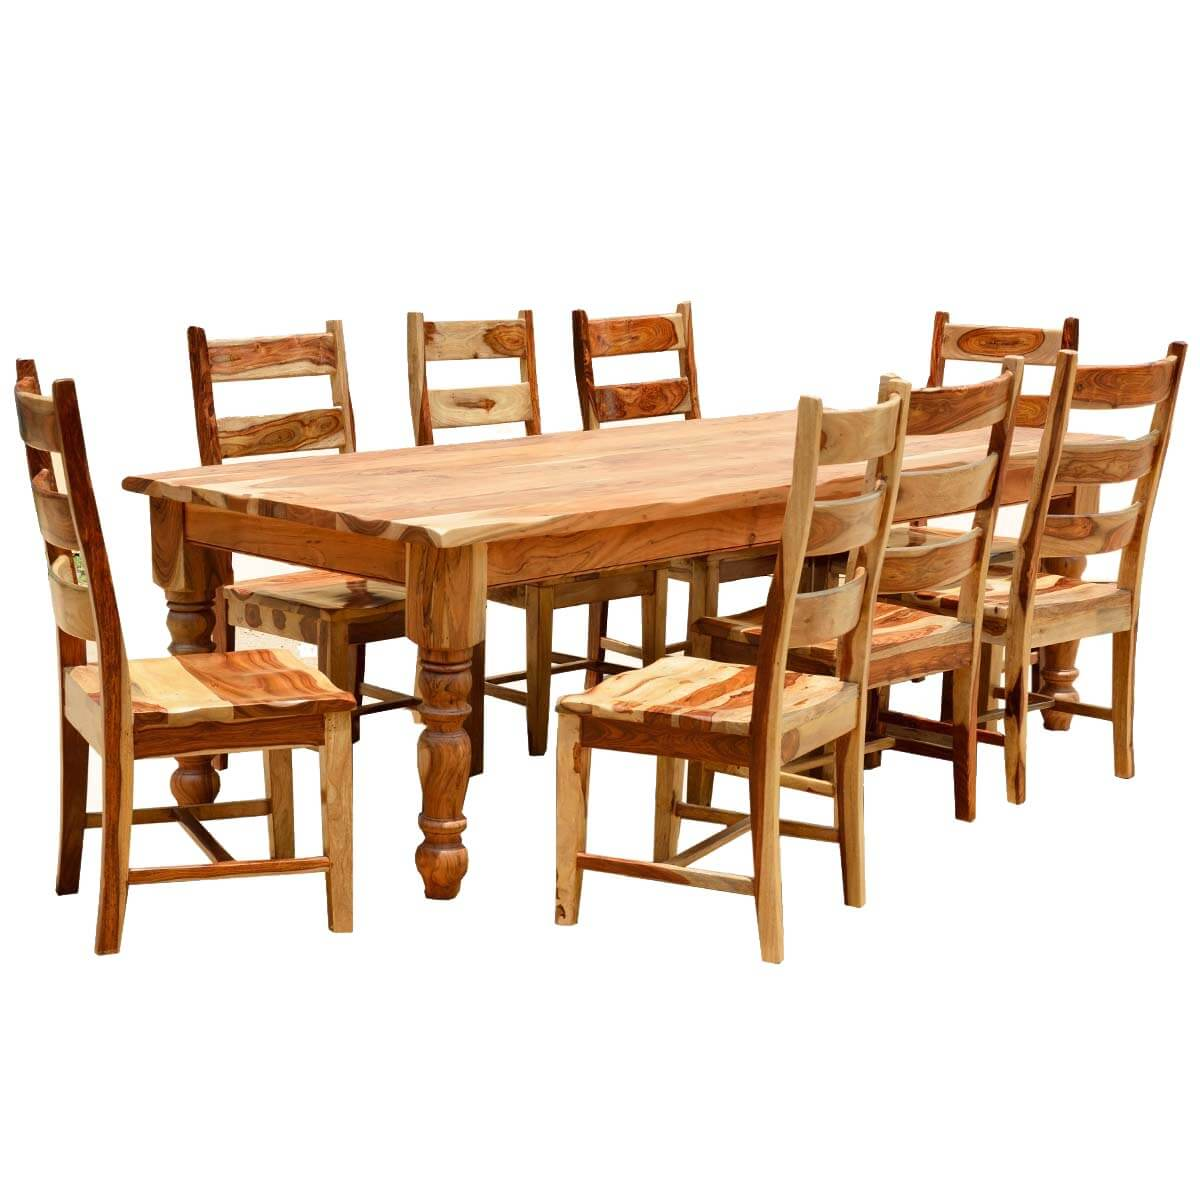 Rustic solid wood farmhouse dining room table chair set for Dining room table with bench